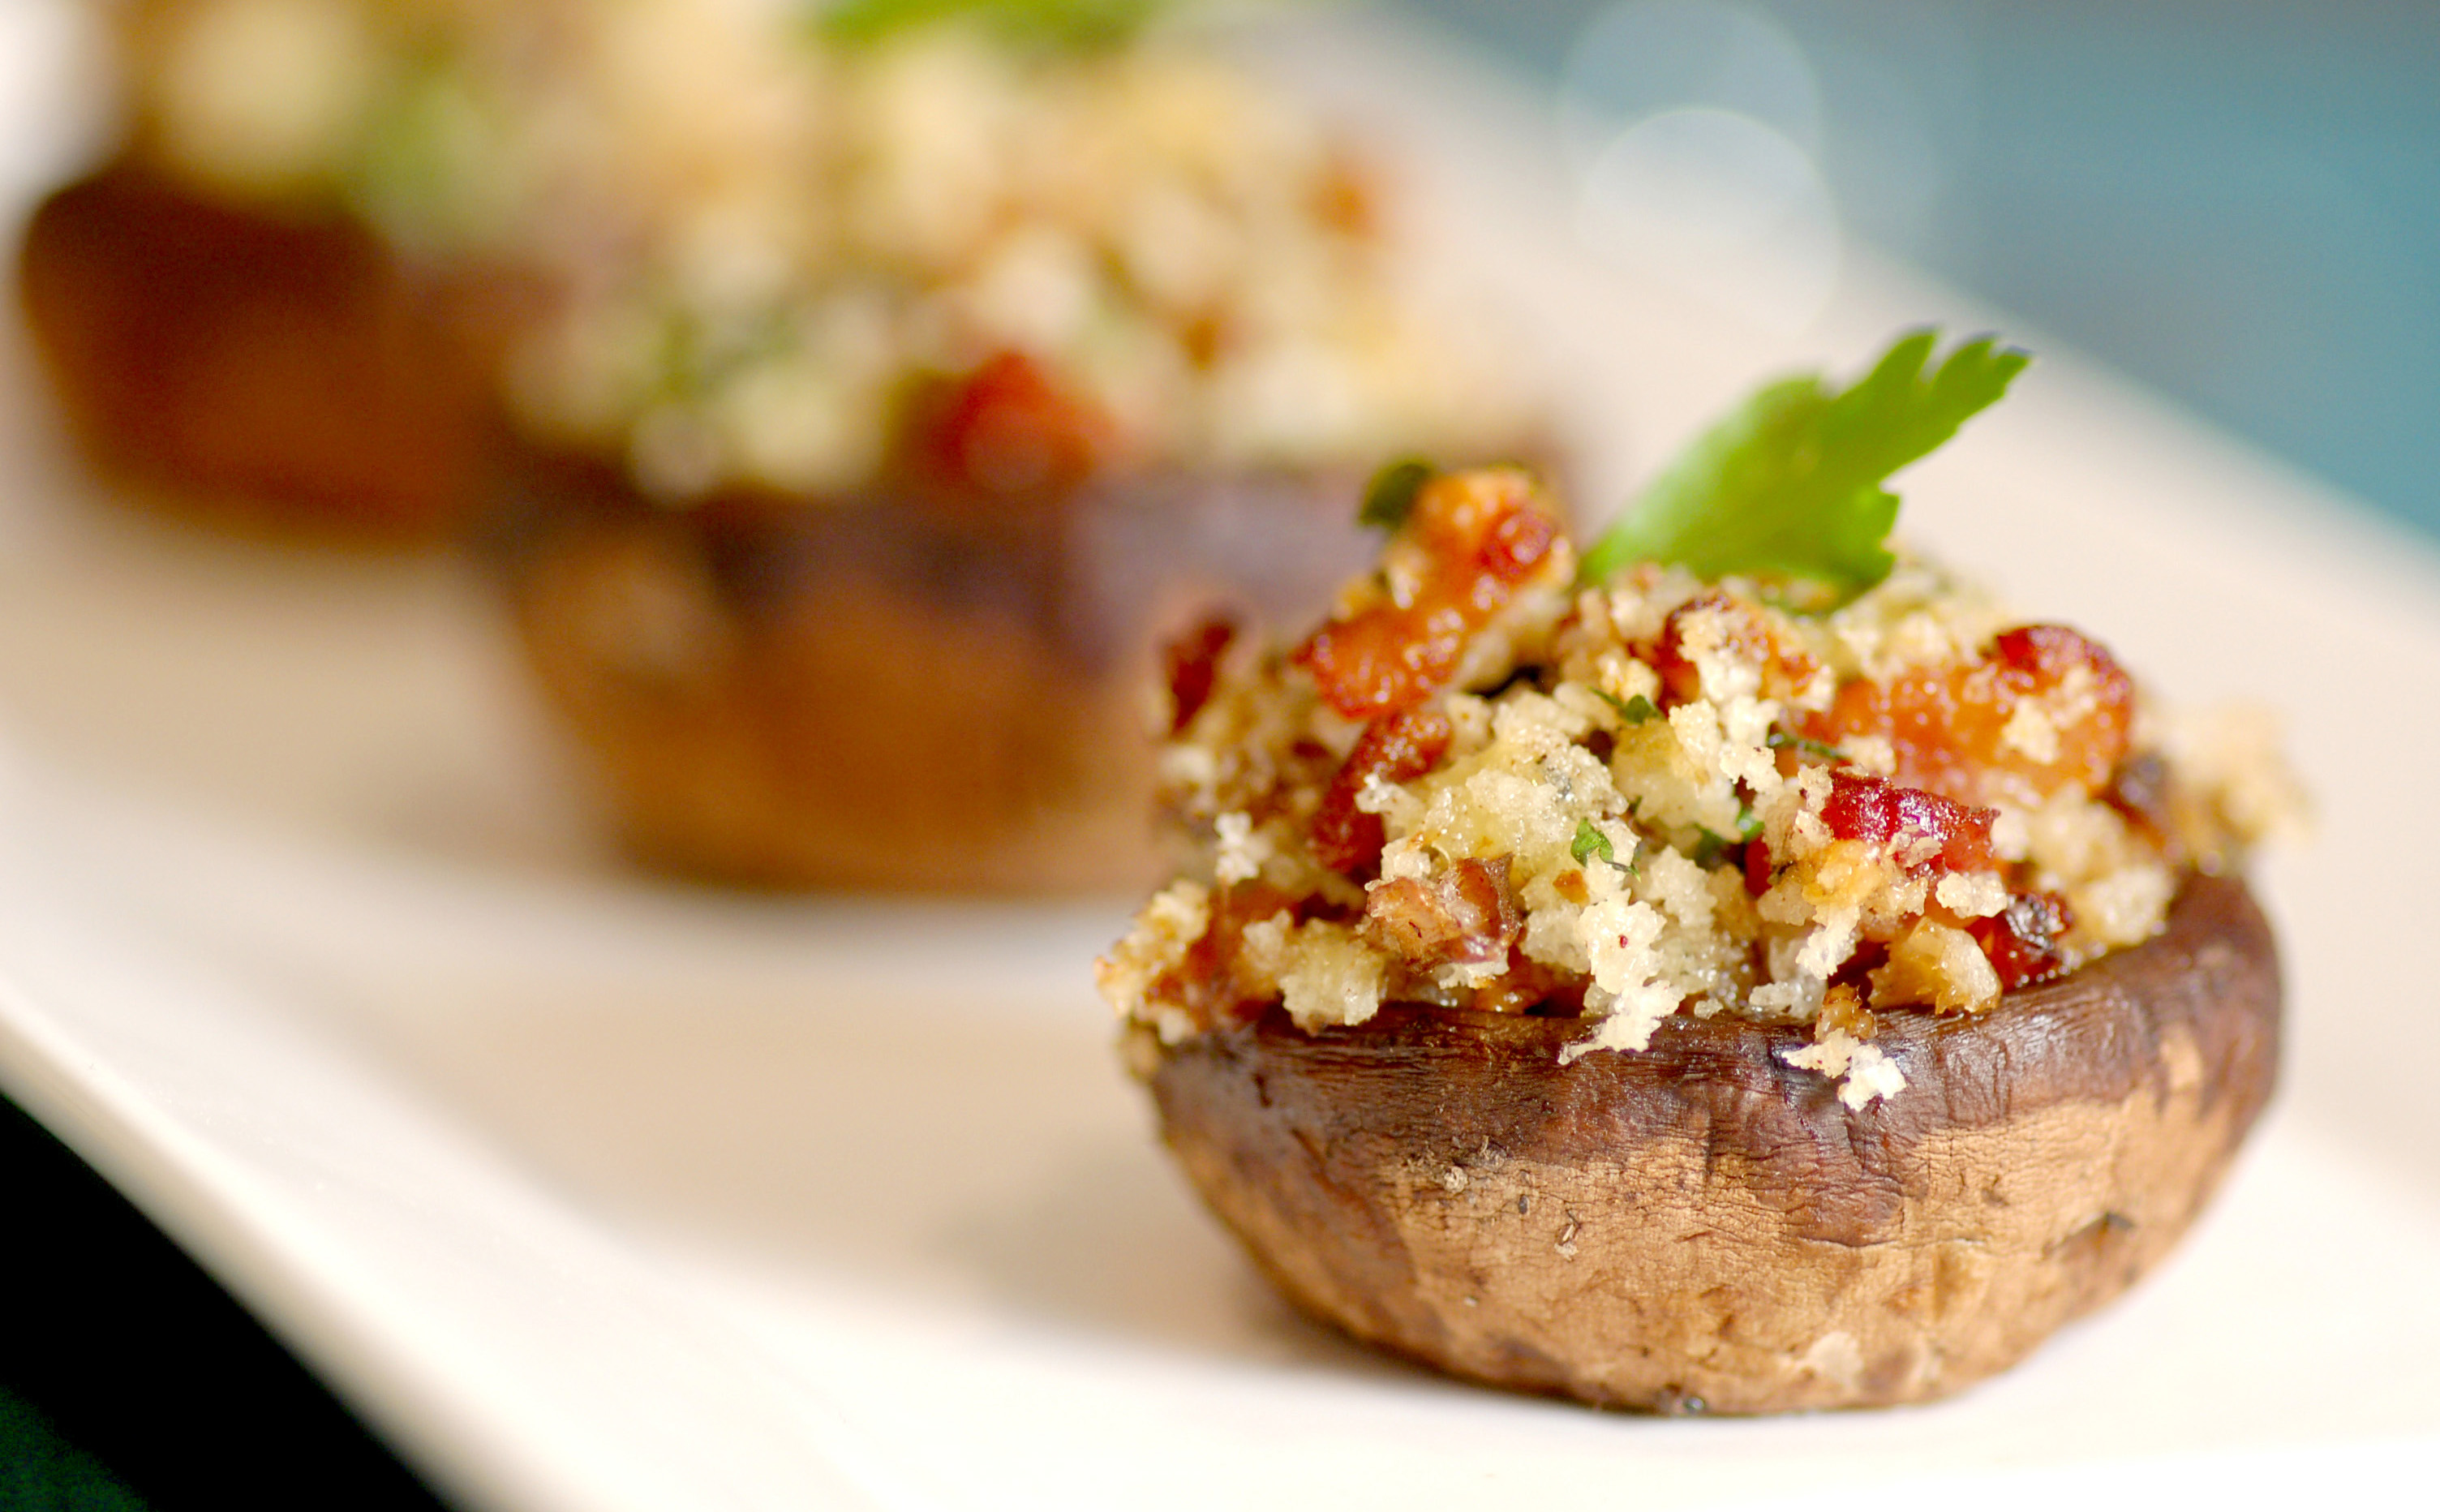 Oregon Blue Bacon Stuffed Mushrooms